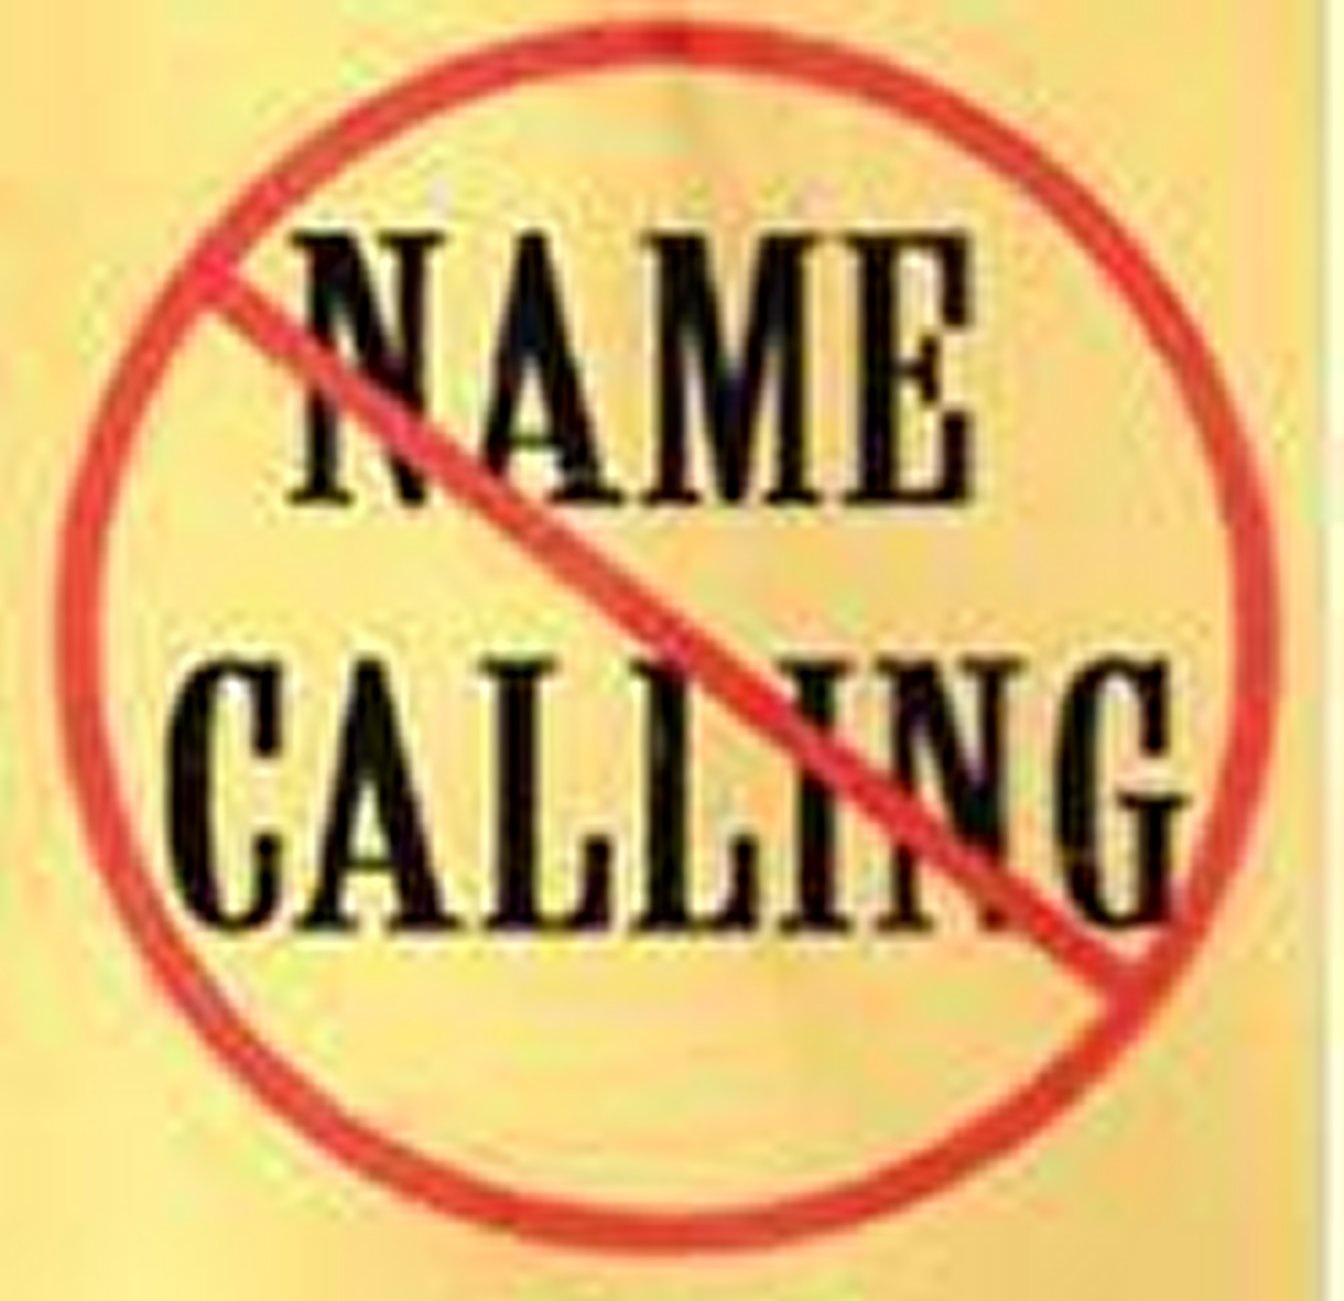 name calling Name-calling is a form of ad hominem attack that draws a vague equivalence between a concept and a person, group or idea by linking the.